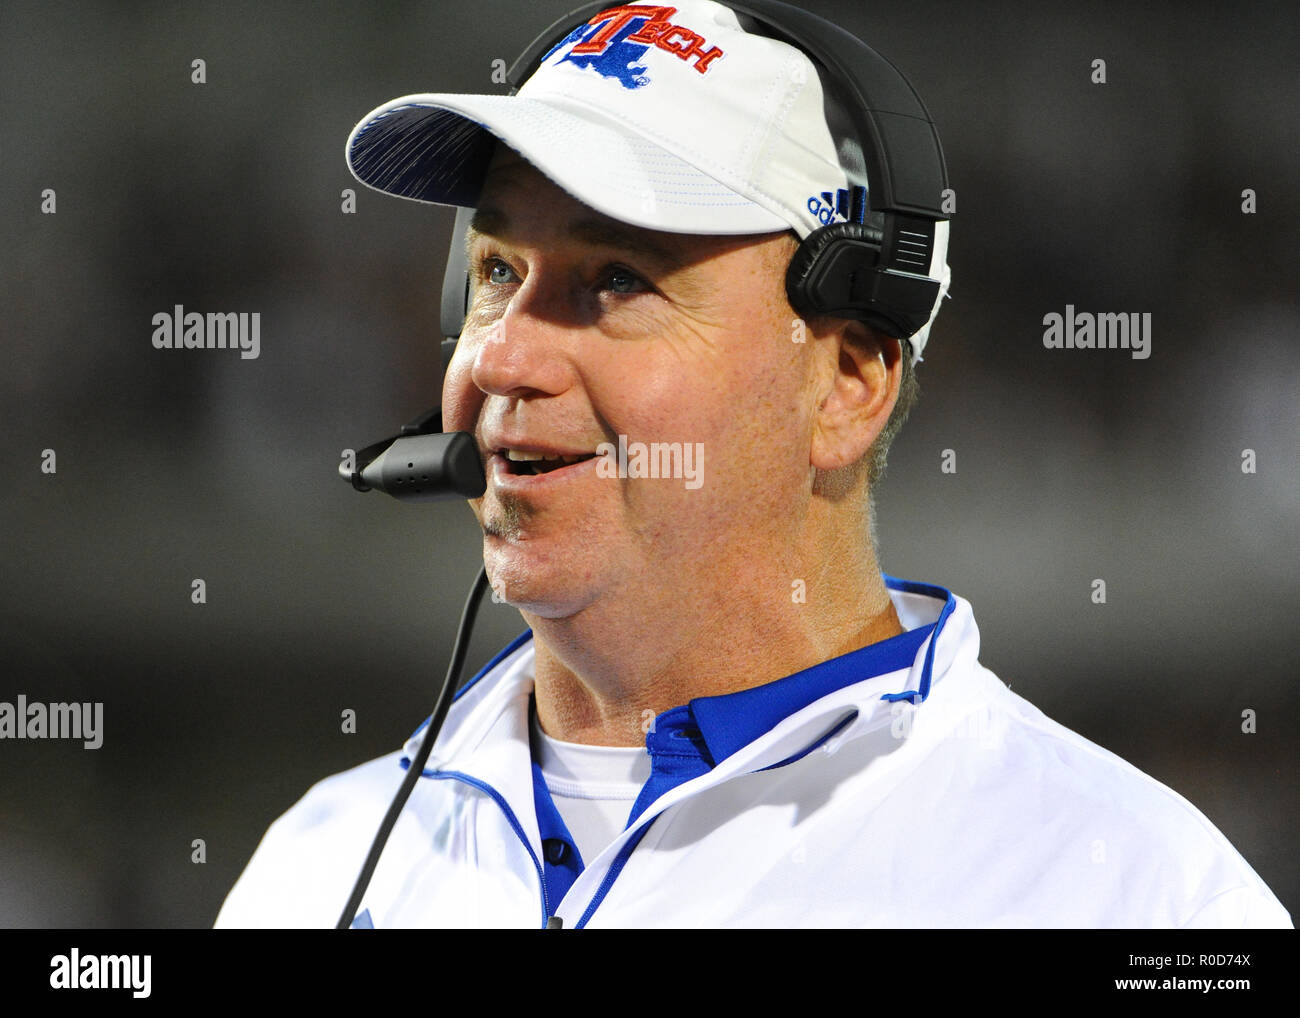 November 03 2018 Louisiana Tech Head Coach Skip Holtz On The Sidelines During The Ncaa Division I Football Game Between Louisiana Tech And The Mississippi State Bulldogs At Davis Wade Stadium In